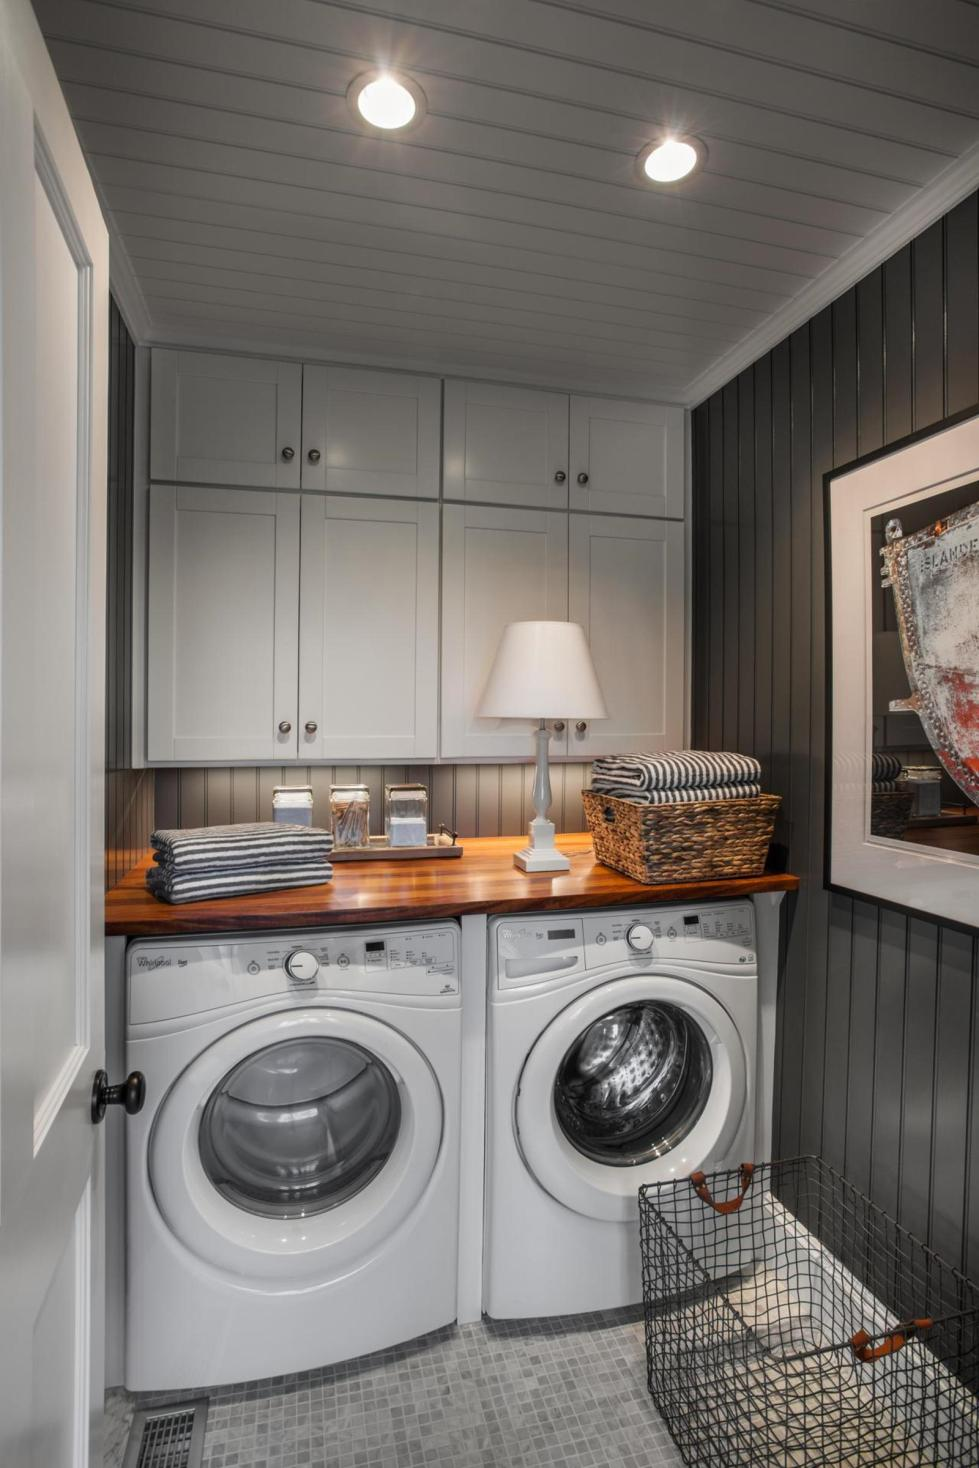 Decorating A Laundry Room On A Budget 39